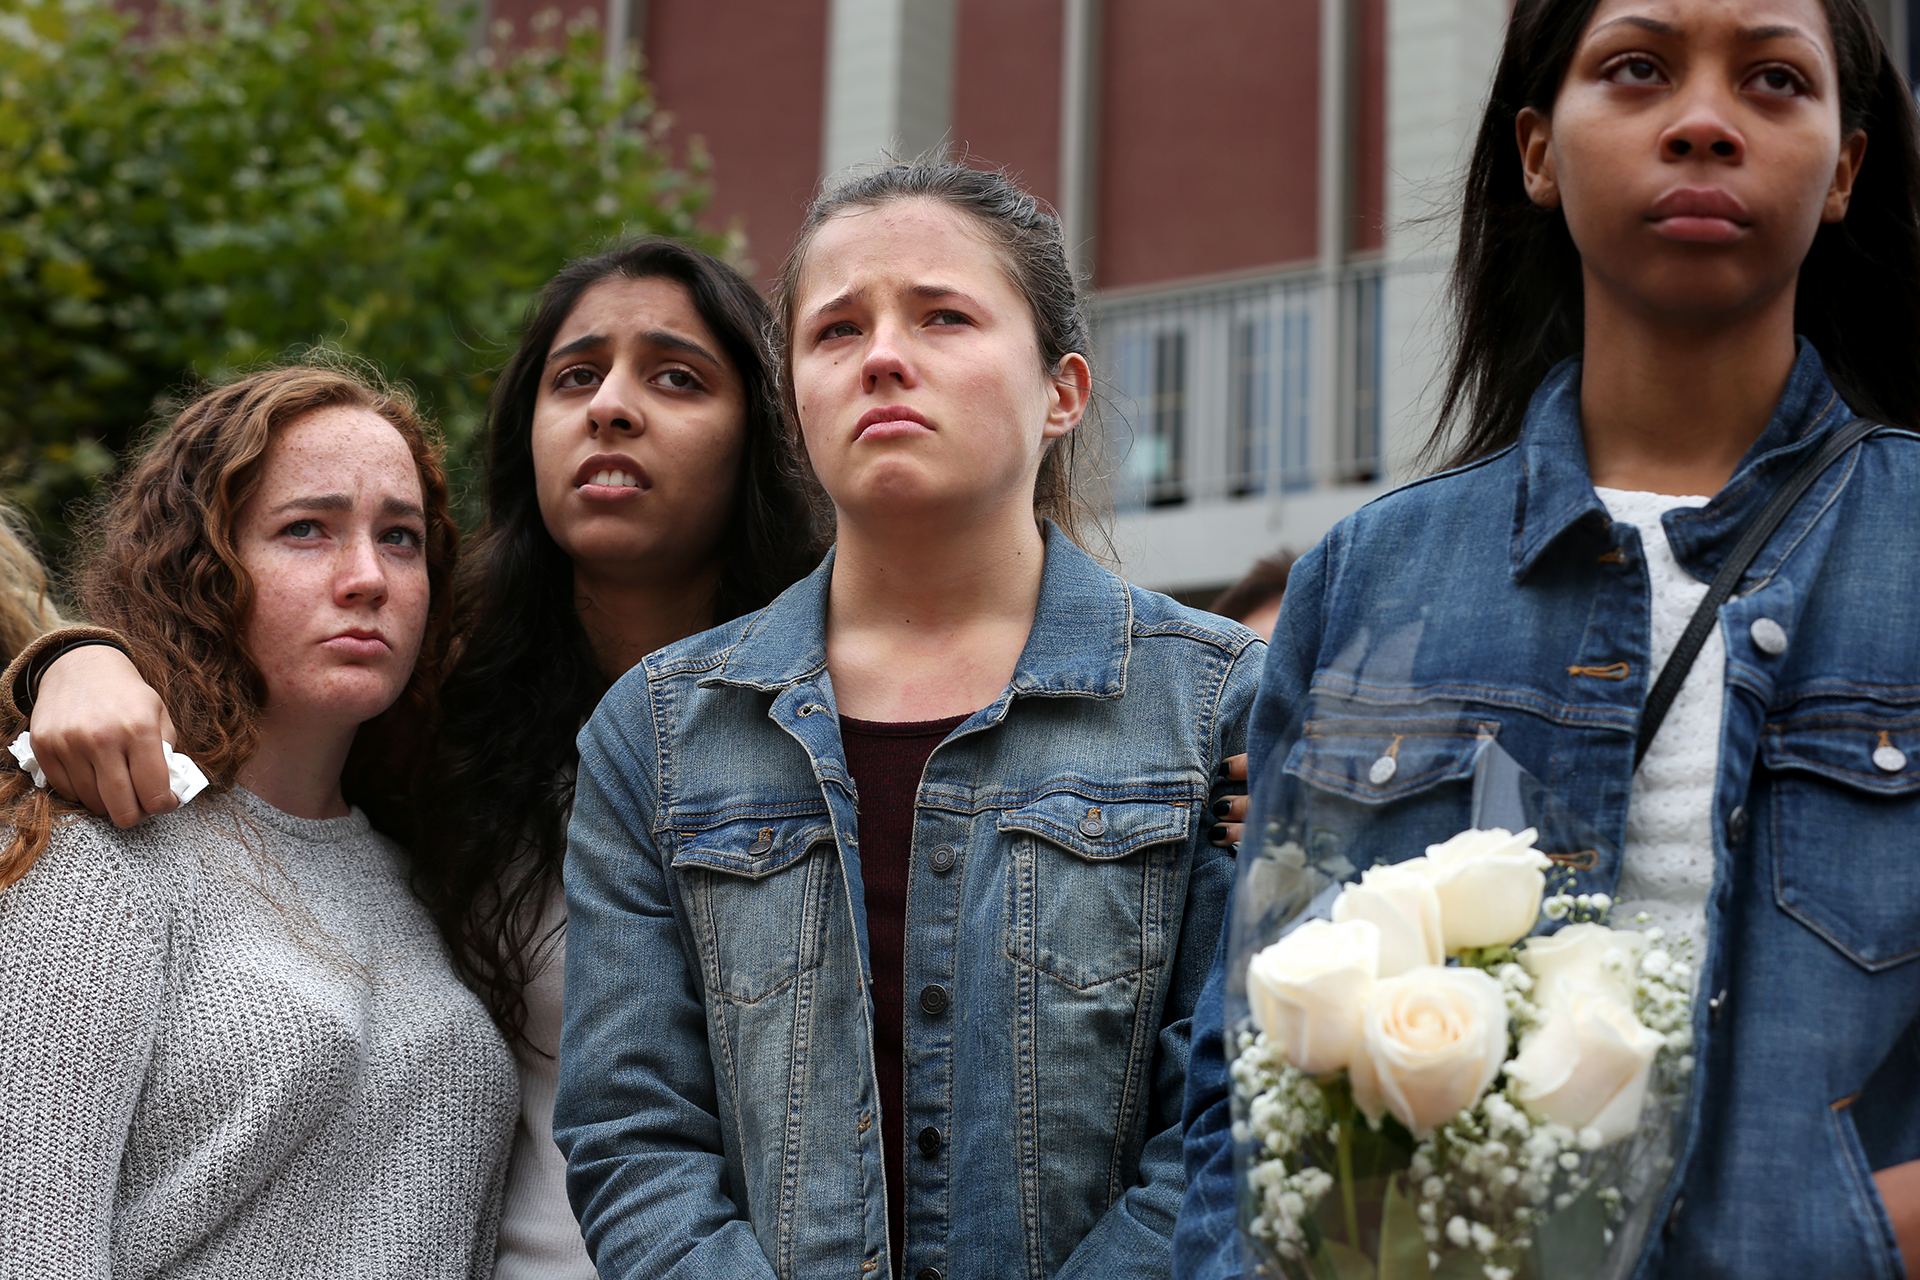 Hannah Rowe (center), former roommate of Tarishi Jain stands with fellow friends Mackenzie Monroe (left), Savreen Saran and Aaliyah Parker during a vigil for 19-year-old UC Berkeley student Tarishi Jain, one of the victims of an attack at a Dhaka cafe in Bangladesh on July 2,2016. The vigil was held on UC Berkeley's campus in Berkeley, Calif. on July 5, 2016.